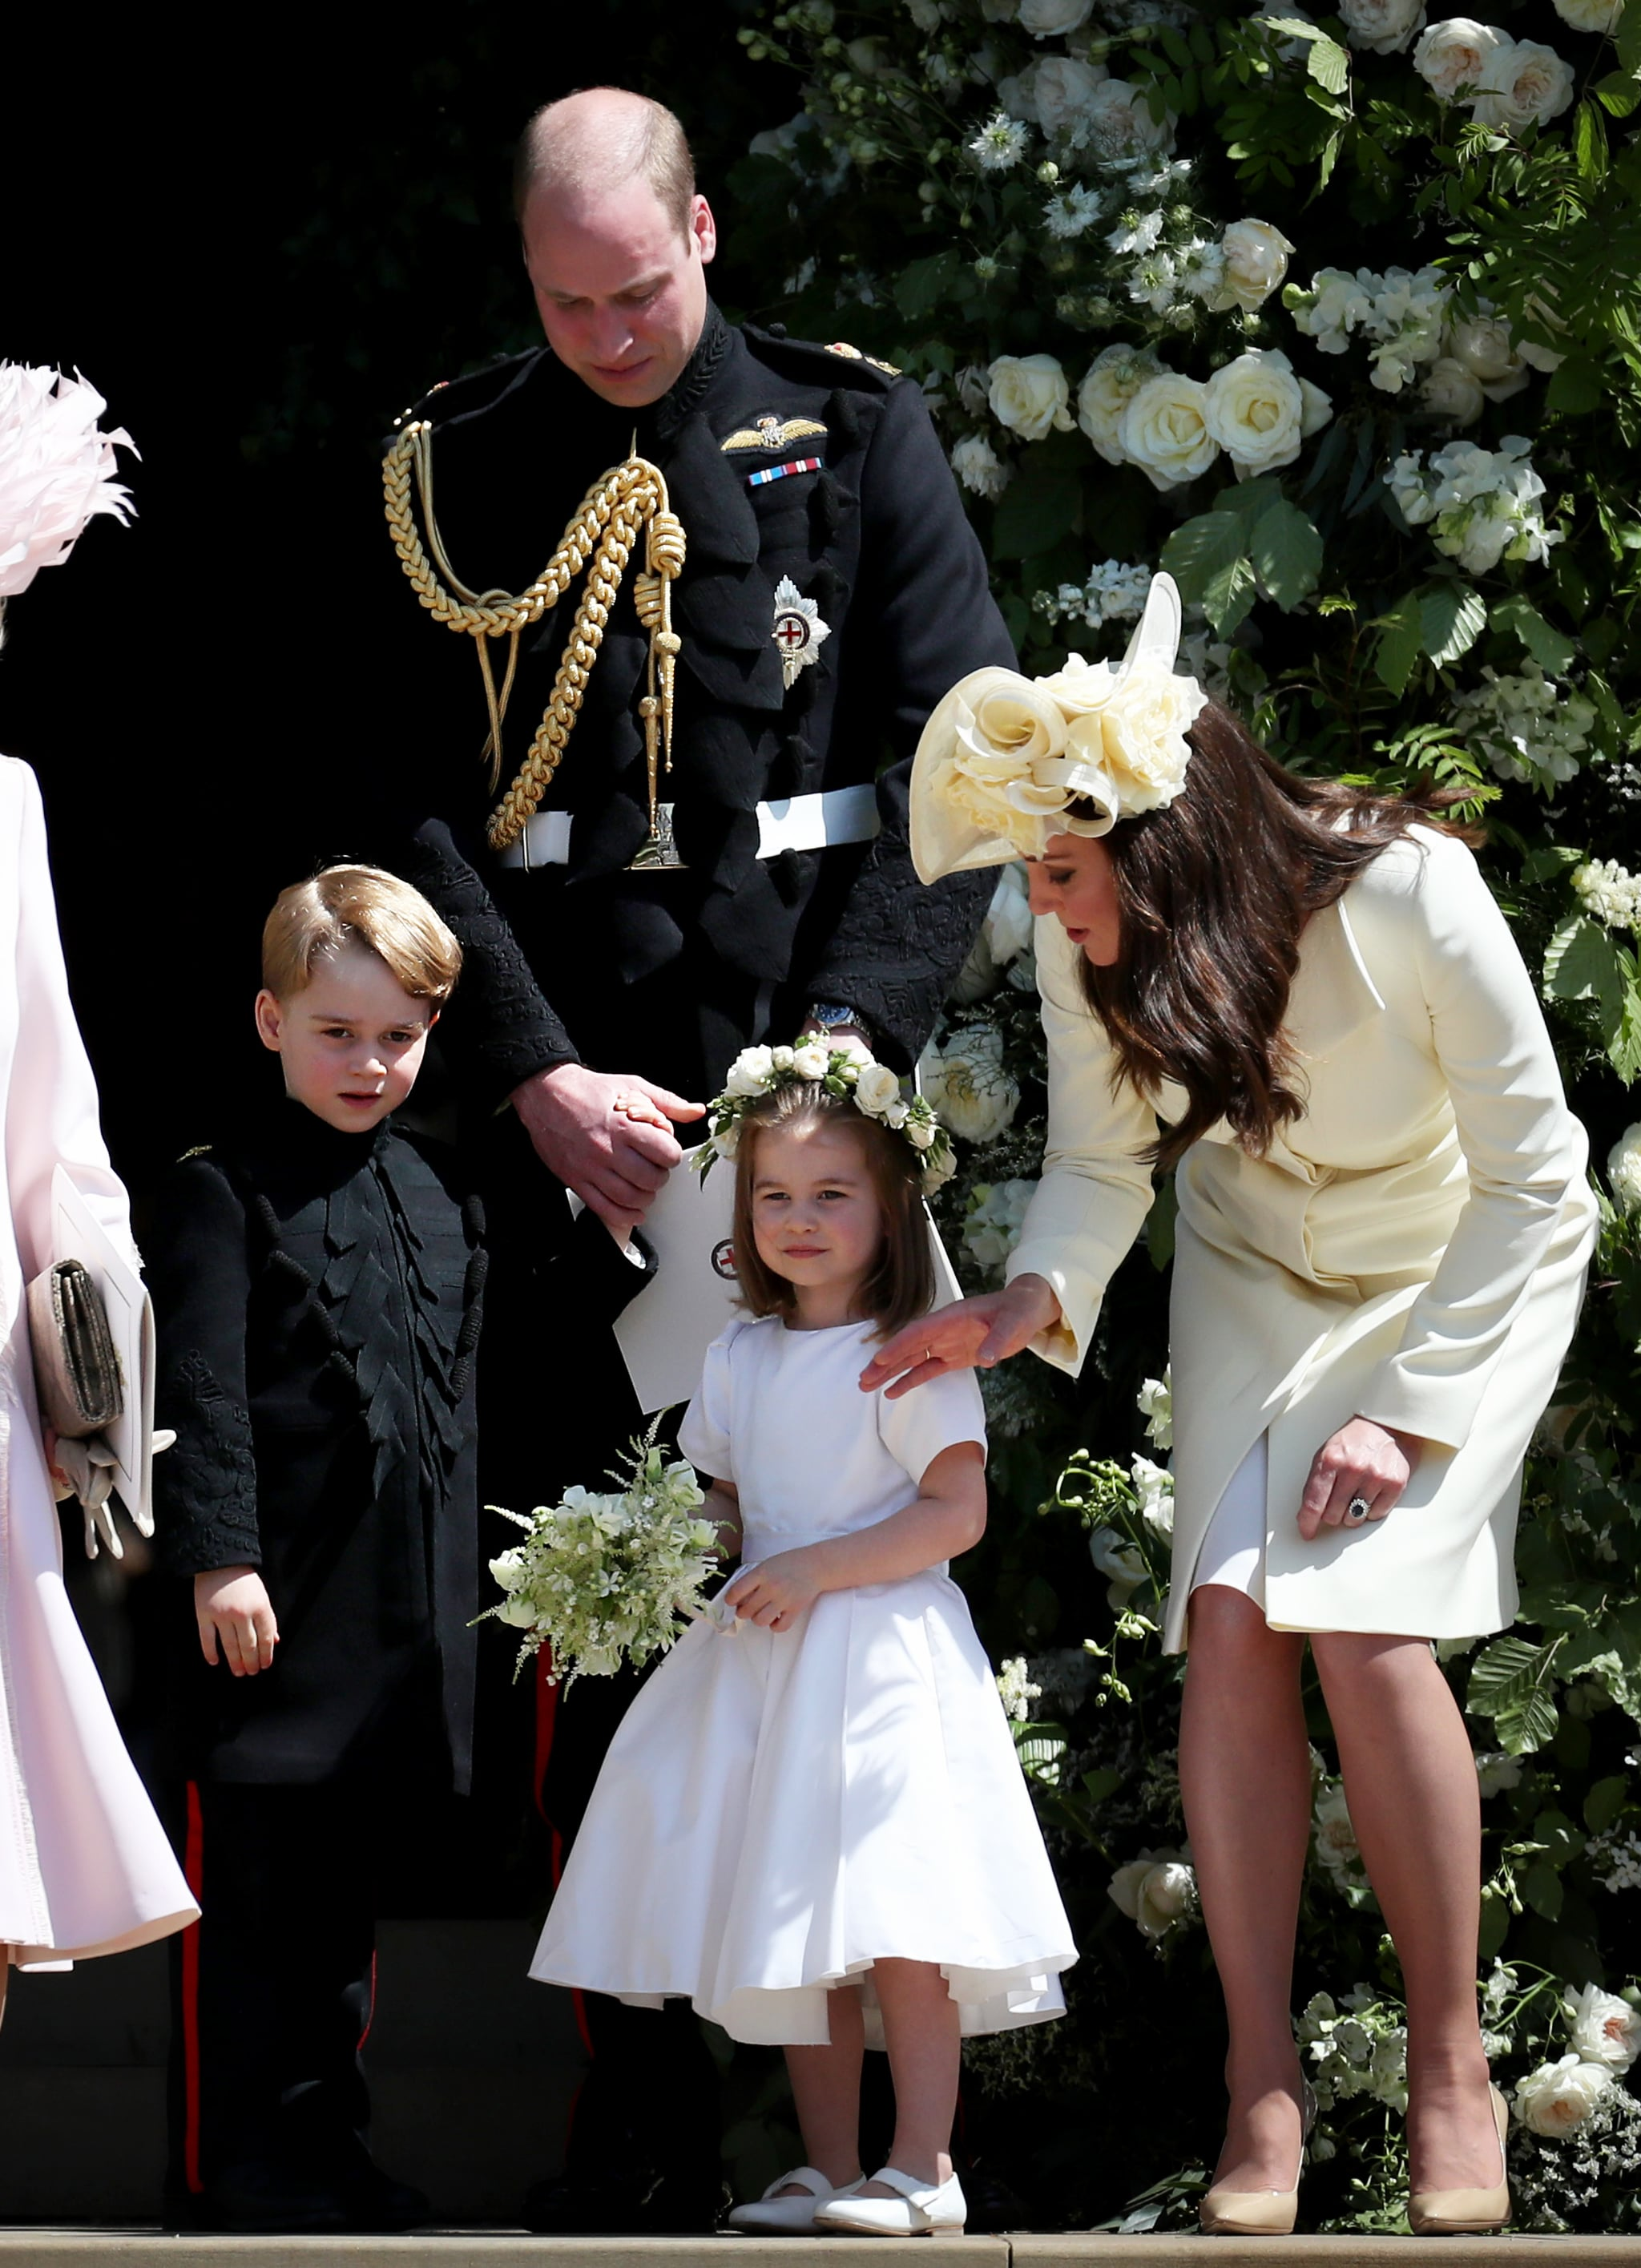 WINDSOR, UNITED KINGDOM - MAY 19:  Prince George of Cambridge, Prince William, Duke of Cambridge, Princess Charlotte of Cambridge and Catherine, Duchess of Cambridge  after the wedding of Prince Harry and Ms. Meghan Markle at St George's Chapel at Windsor Castle on May 19, 2018 in Windsor, England. (Photo by Jane Barlow - WPA Pool/Getty Images)